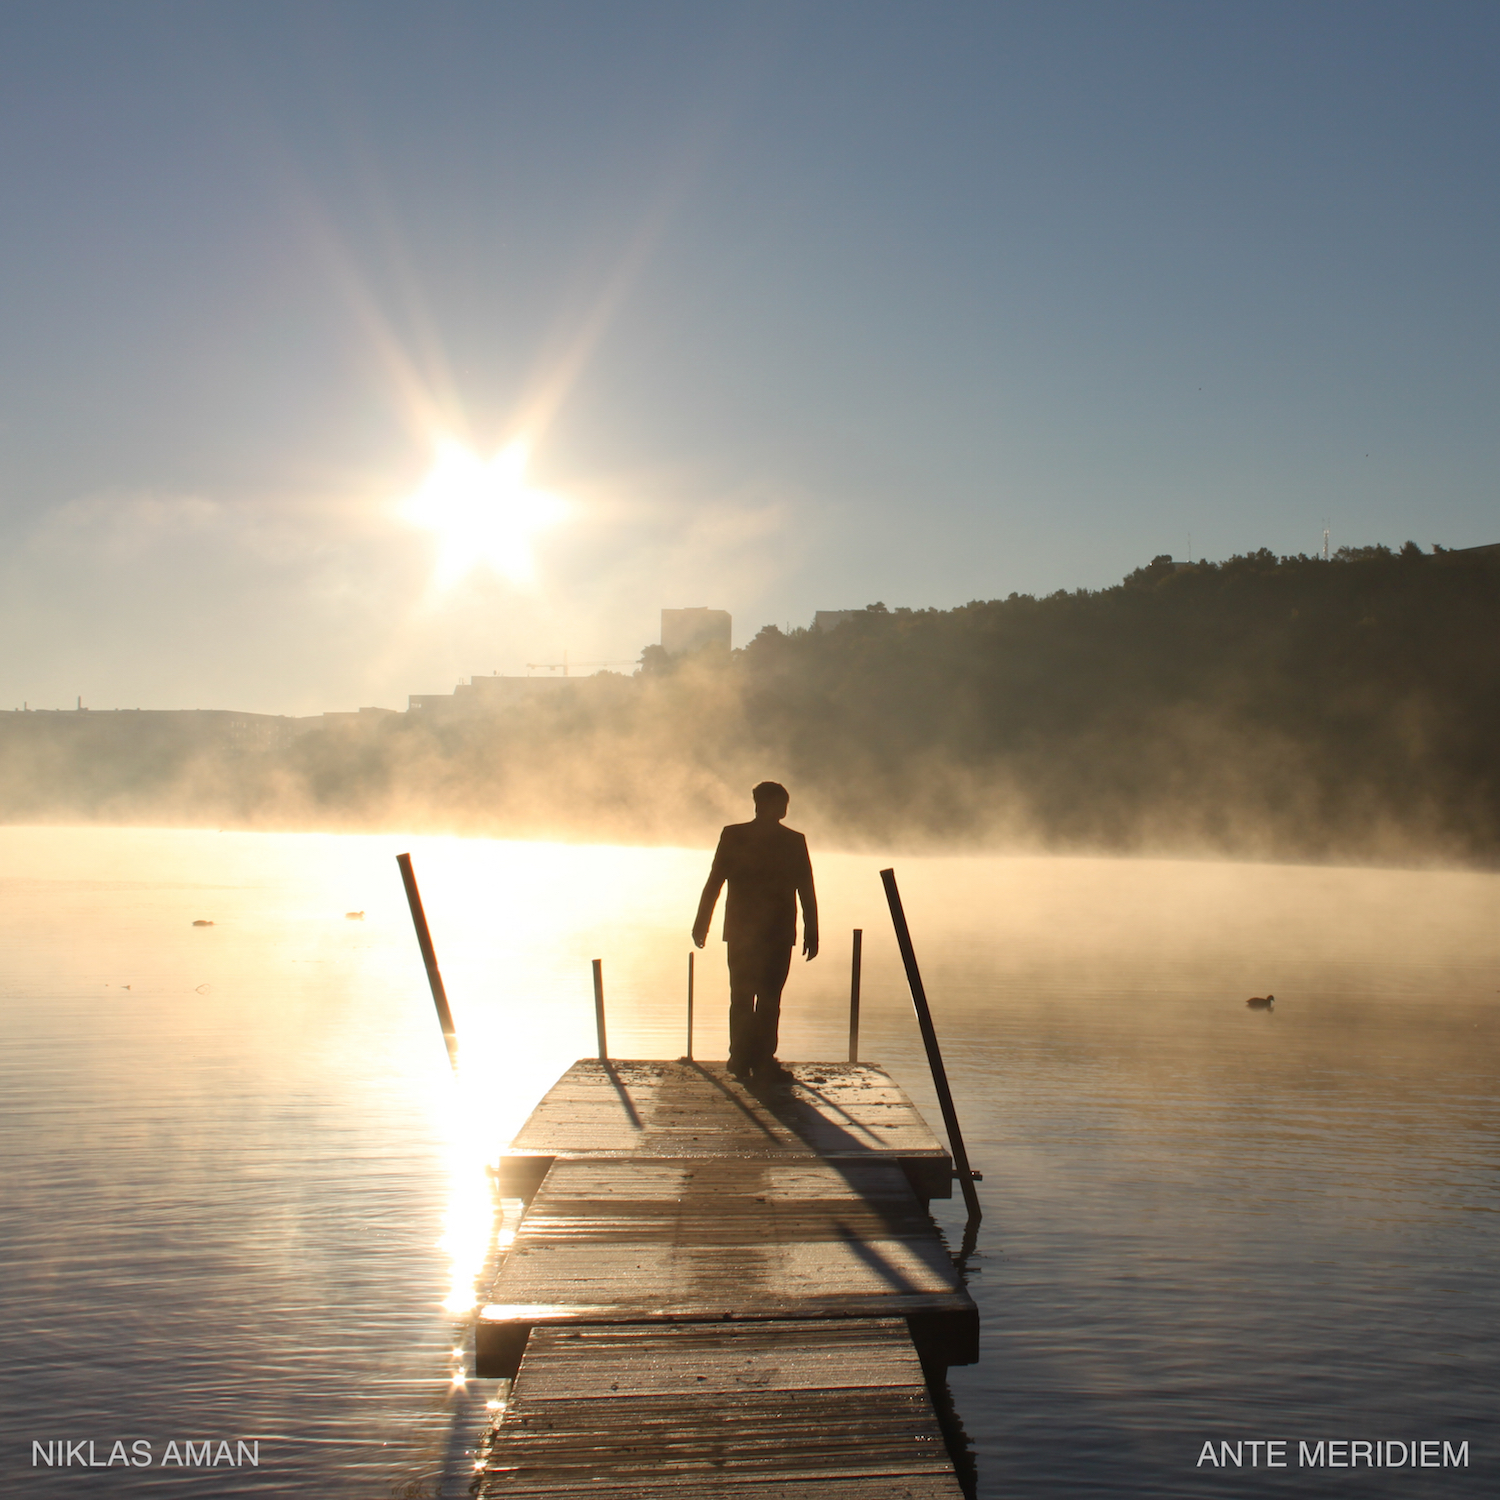 Ante Meridiem album cover